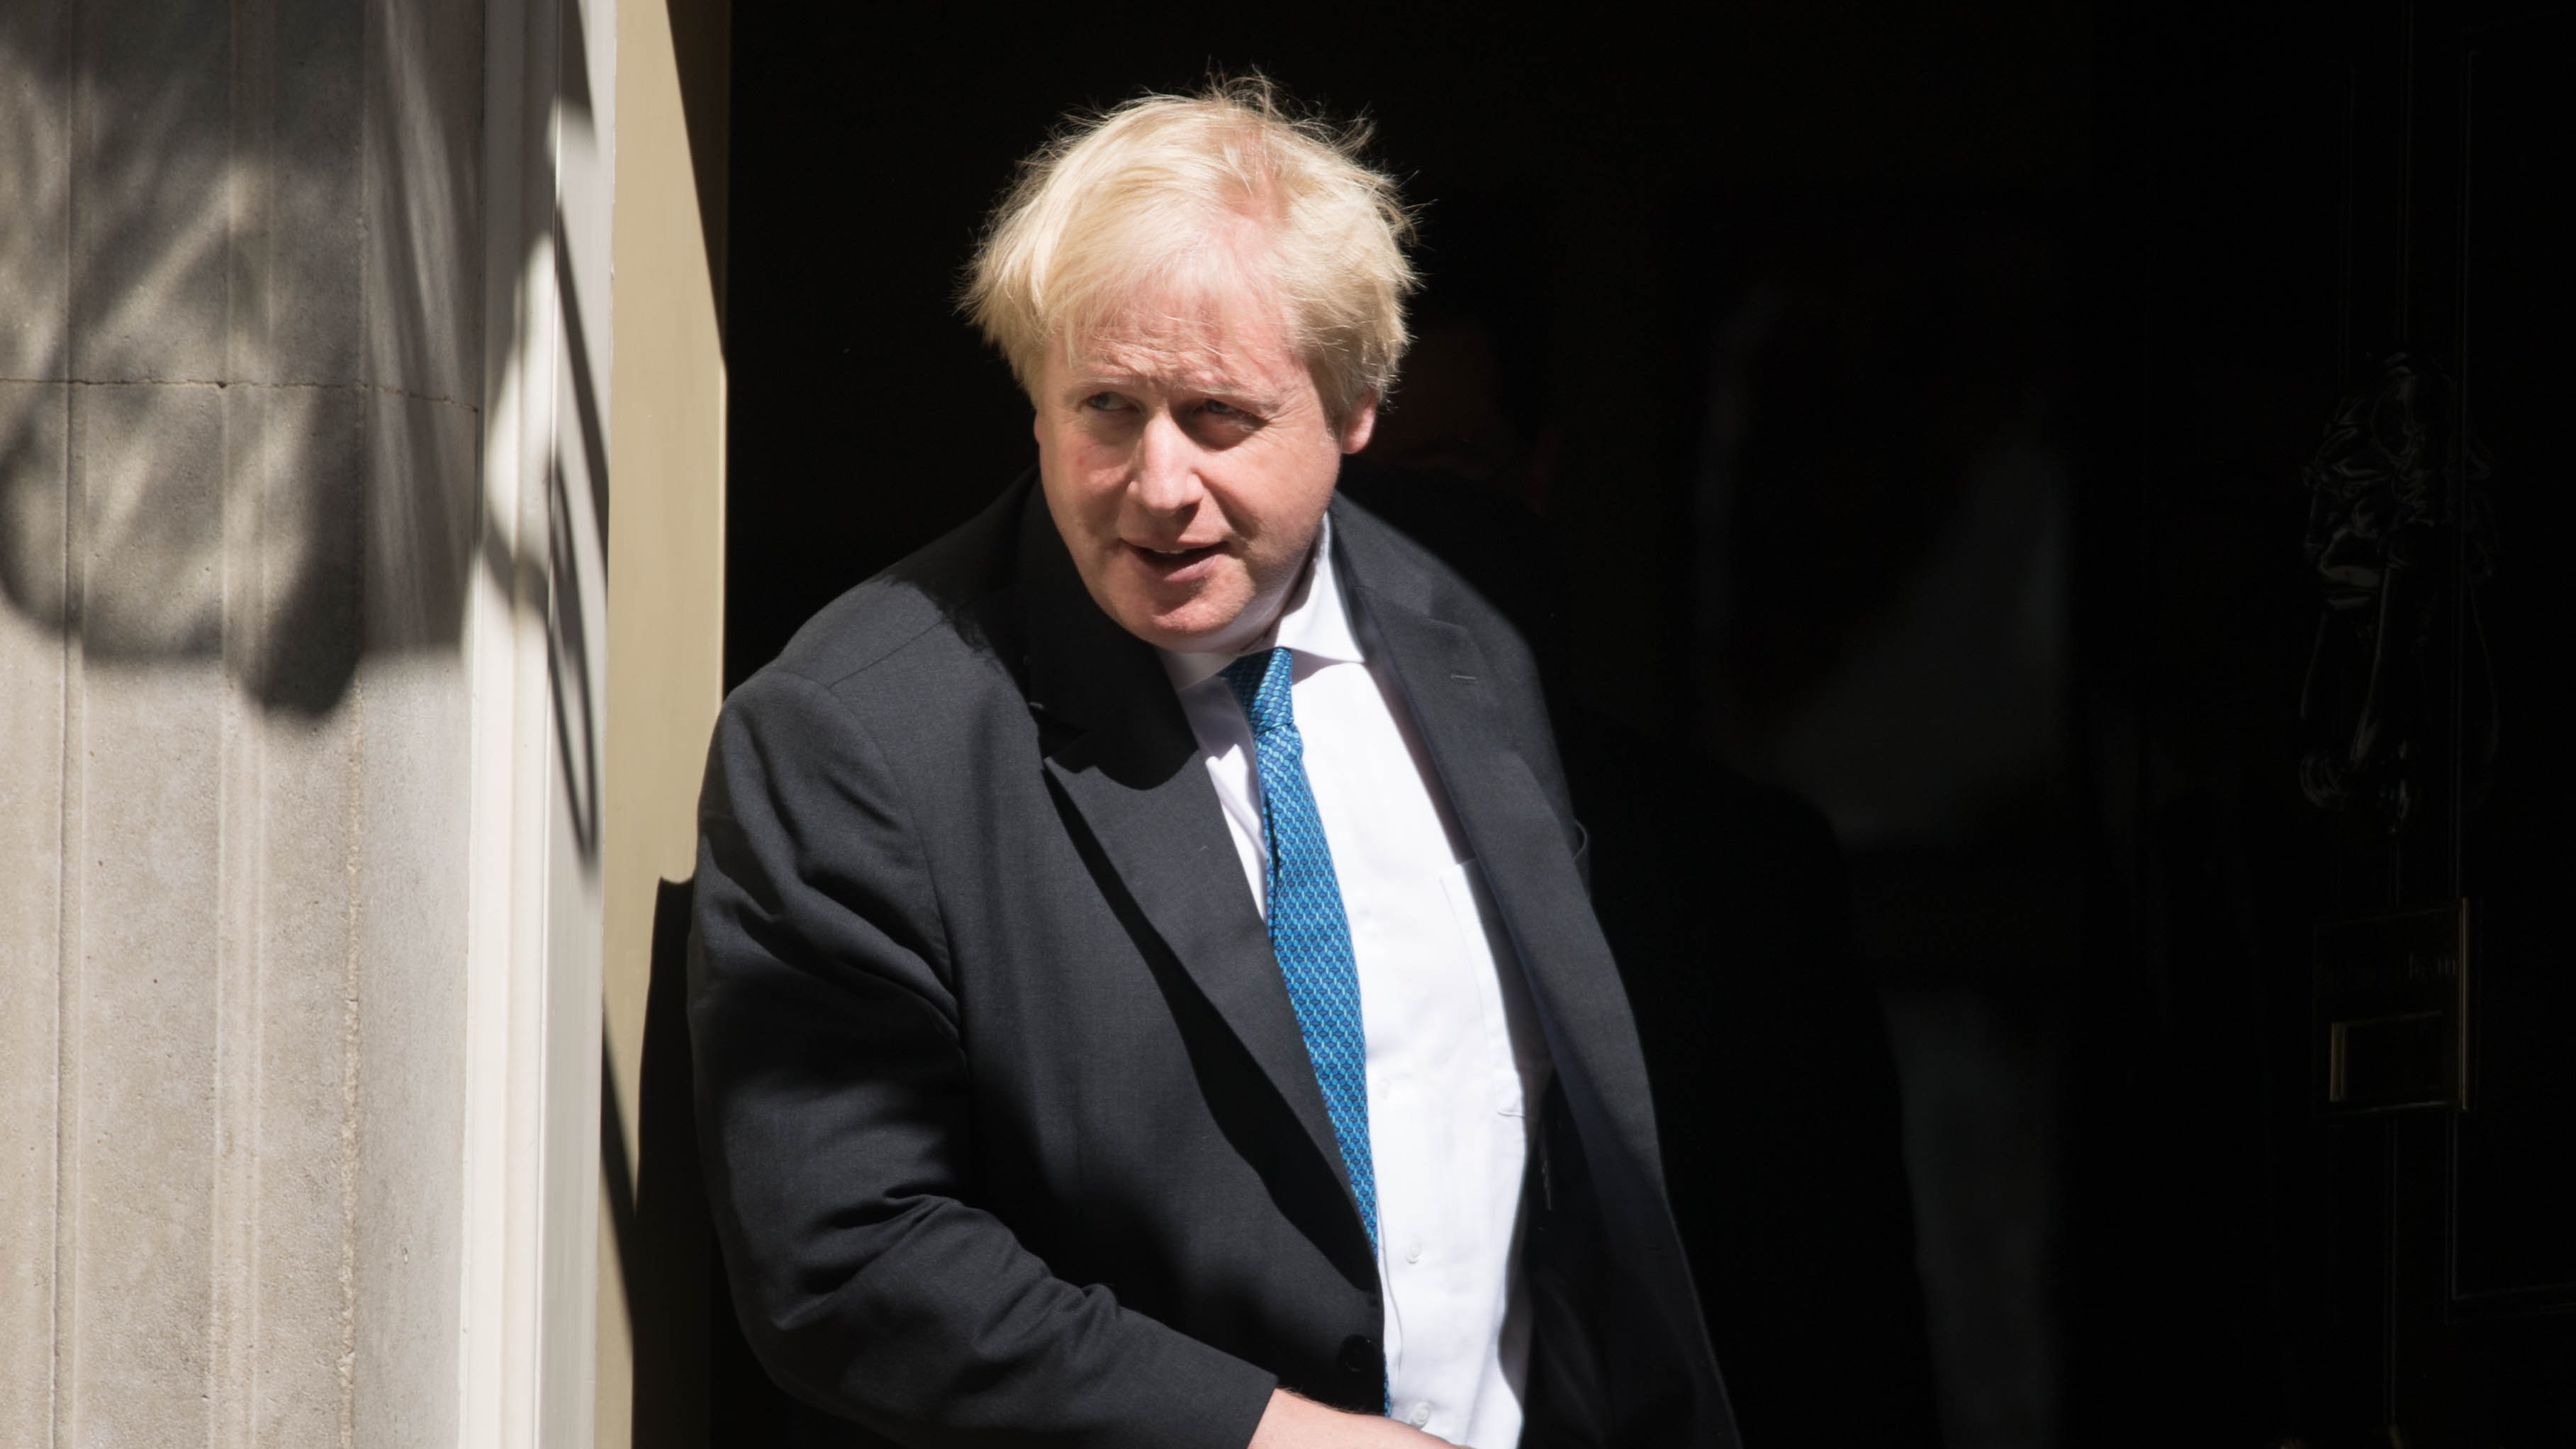 Boris Johnson takes call from prankster posing as Armenia PM